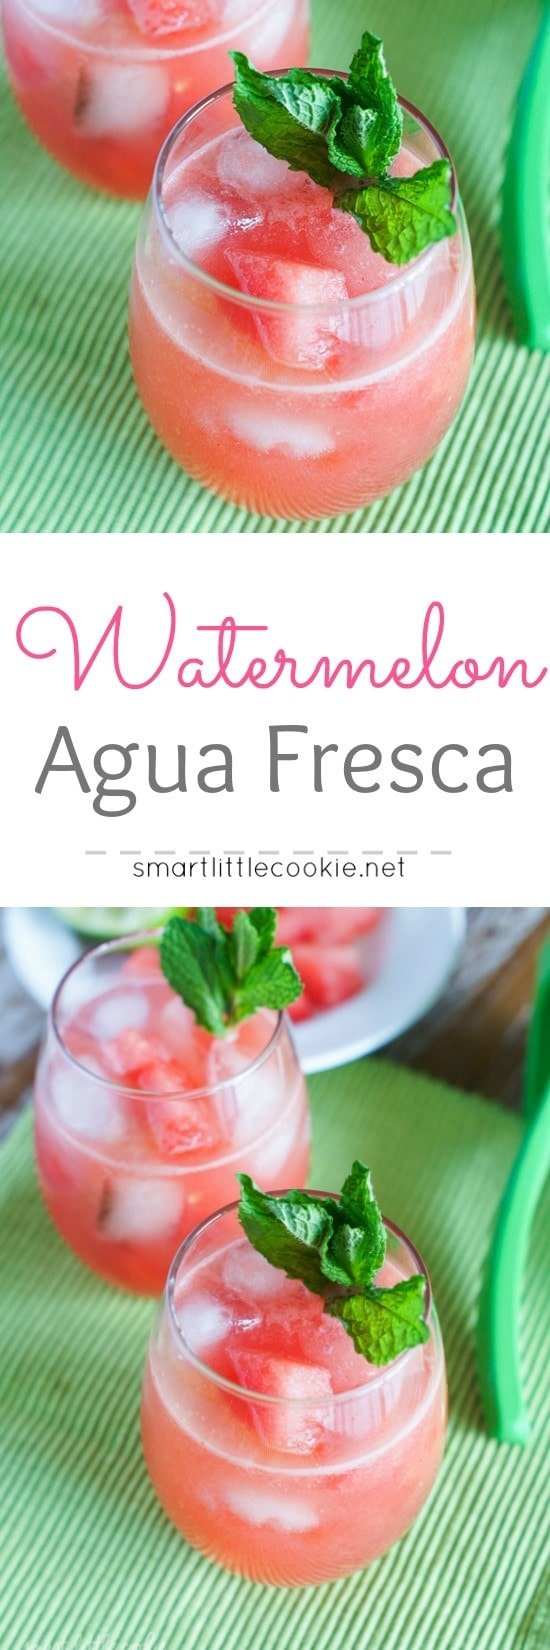 Pinterest graphic. Watermelon Agua fresca with text overlay.